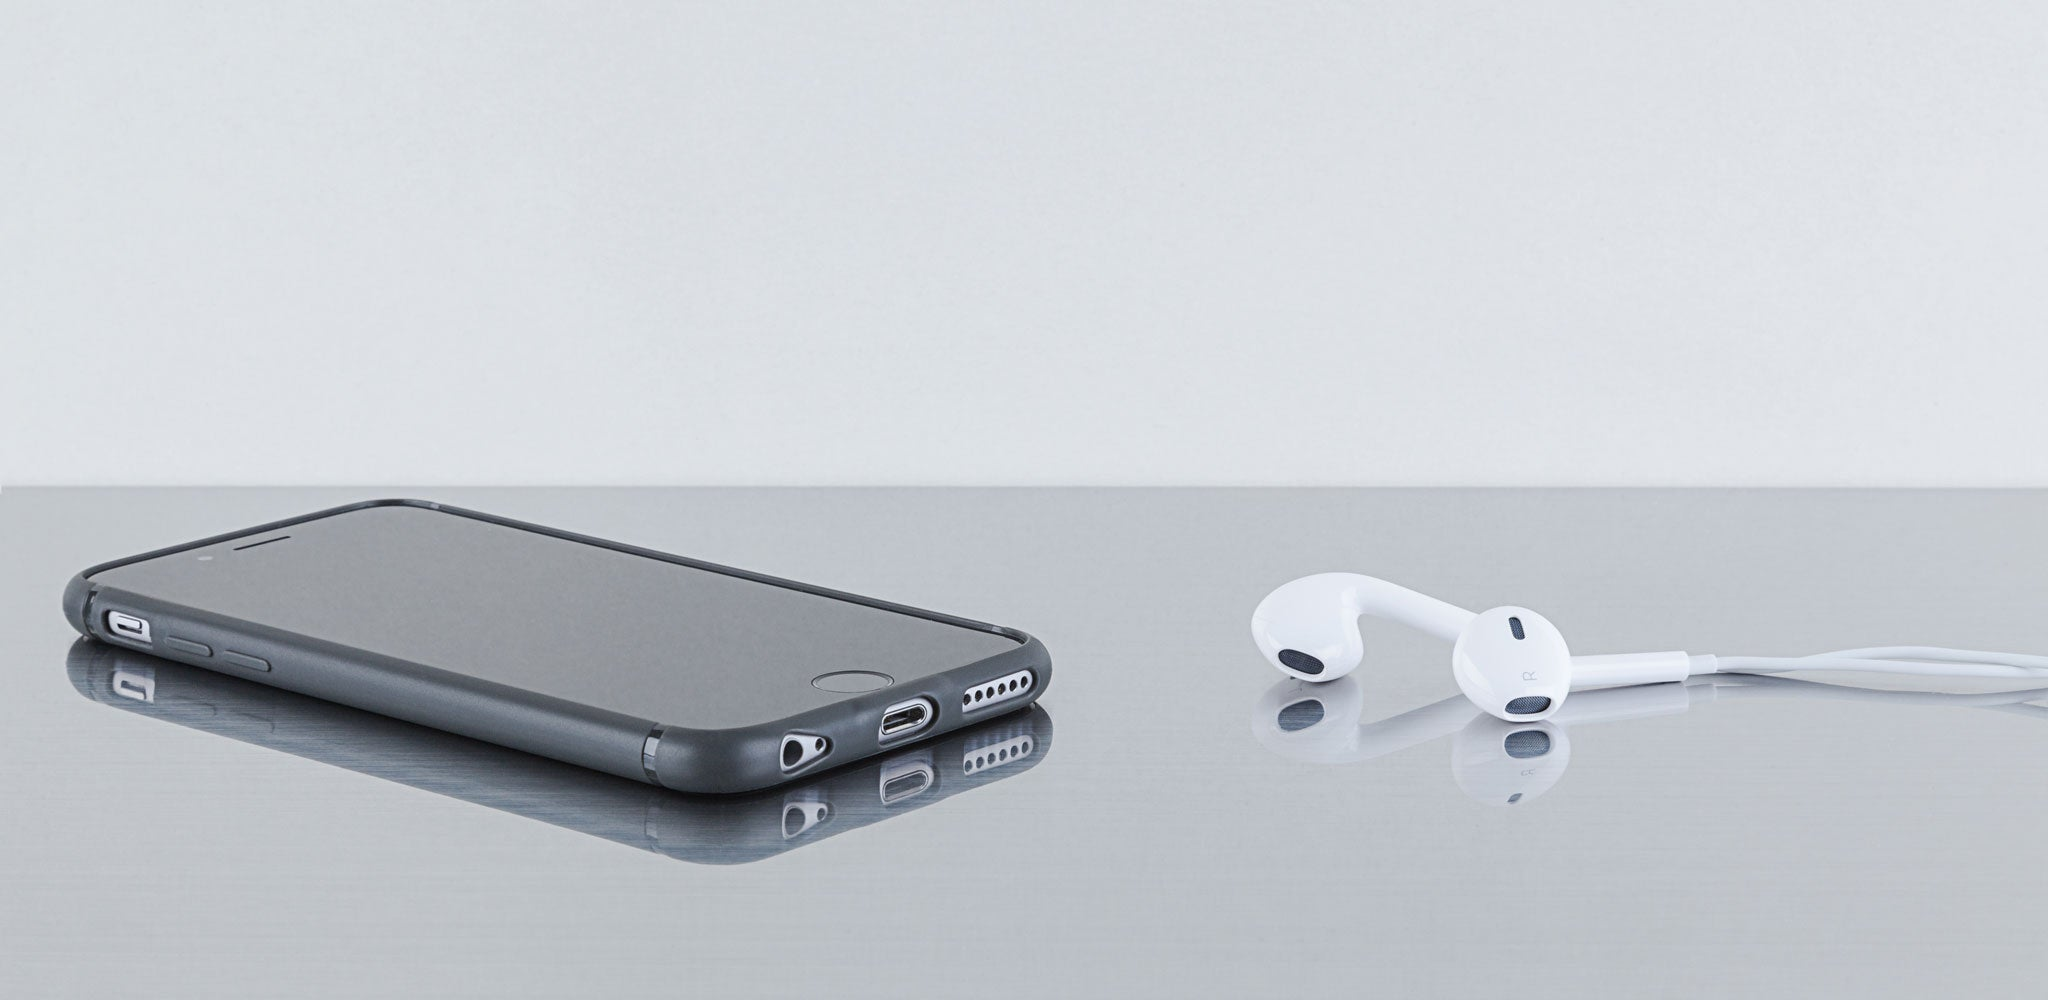 The Sheath | Super slim, shock-absorbing, minimalist iPhone case | earbuds